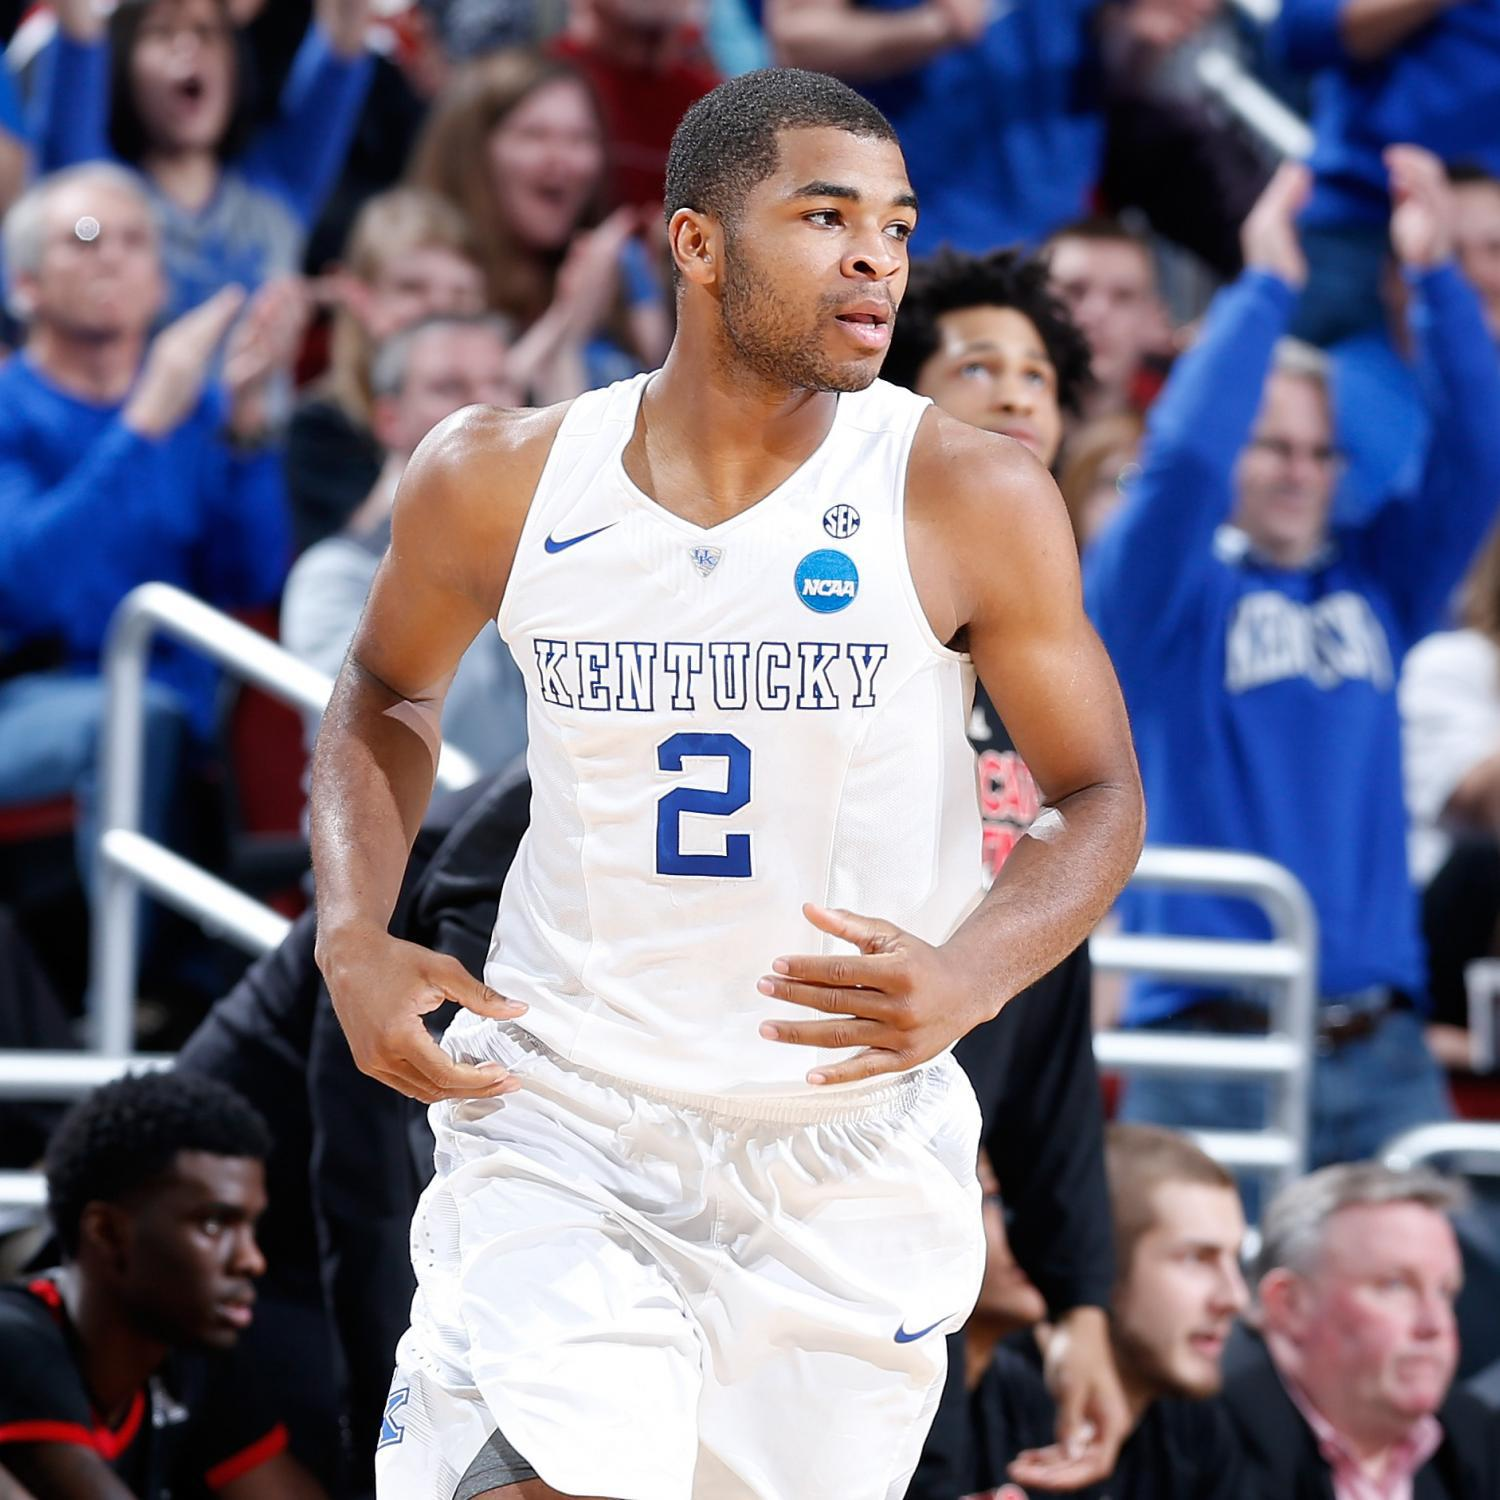 NCAA Bracket 2015: Sweet 16 Schedule, Predictions and Odds